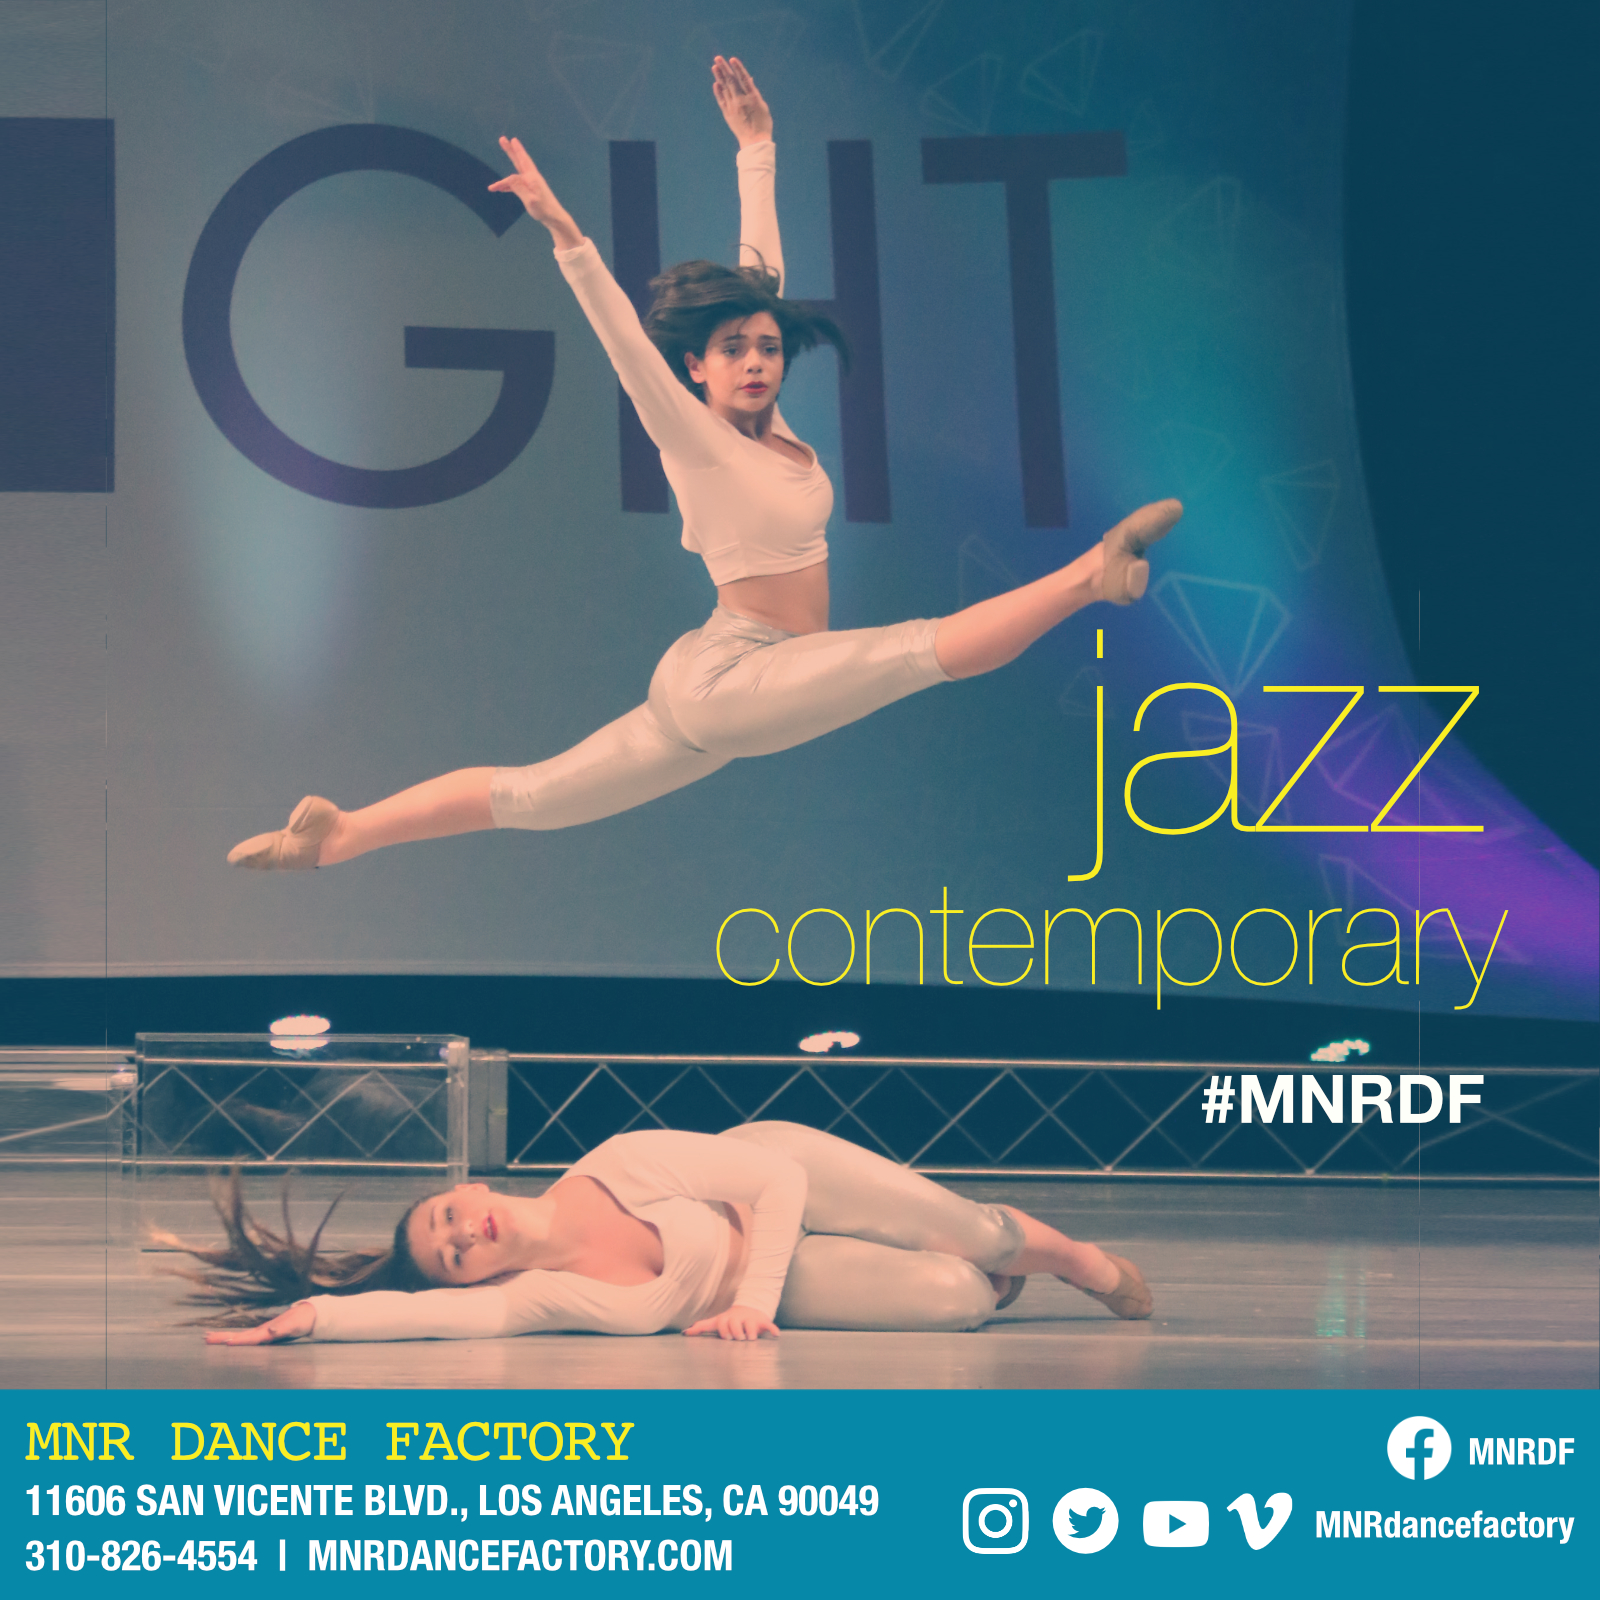 Jazz/Contemporary - Jazz dance is a classification shared by a broad range of dance styles. Jazz will teach students balance, flexibility, strength, and creative expression. Contemporary dance is a dance performance genre that developed during the mid twentieth century and has since grown to become one of the dominant genres for formally trained dancers. Contemporary is a fluid movement, teaching students to use musicality to express emotion or a story and combines techniques of all styles of dance.